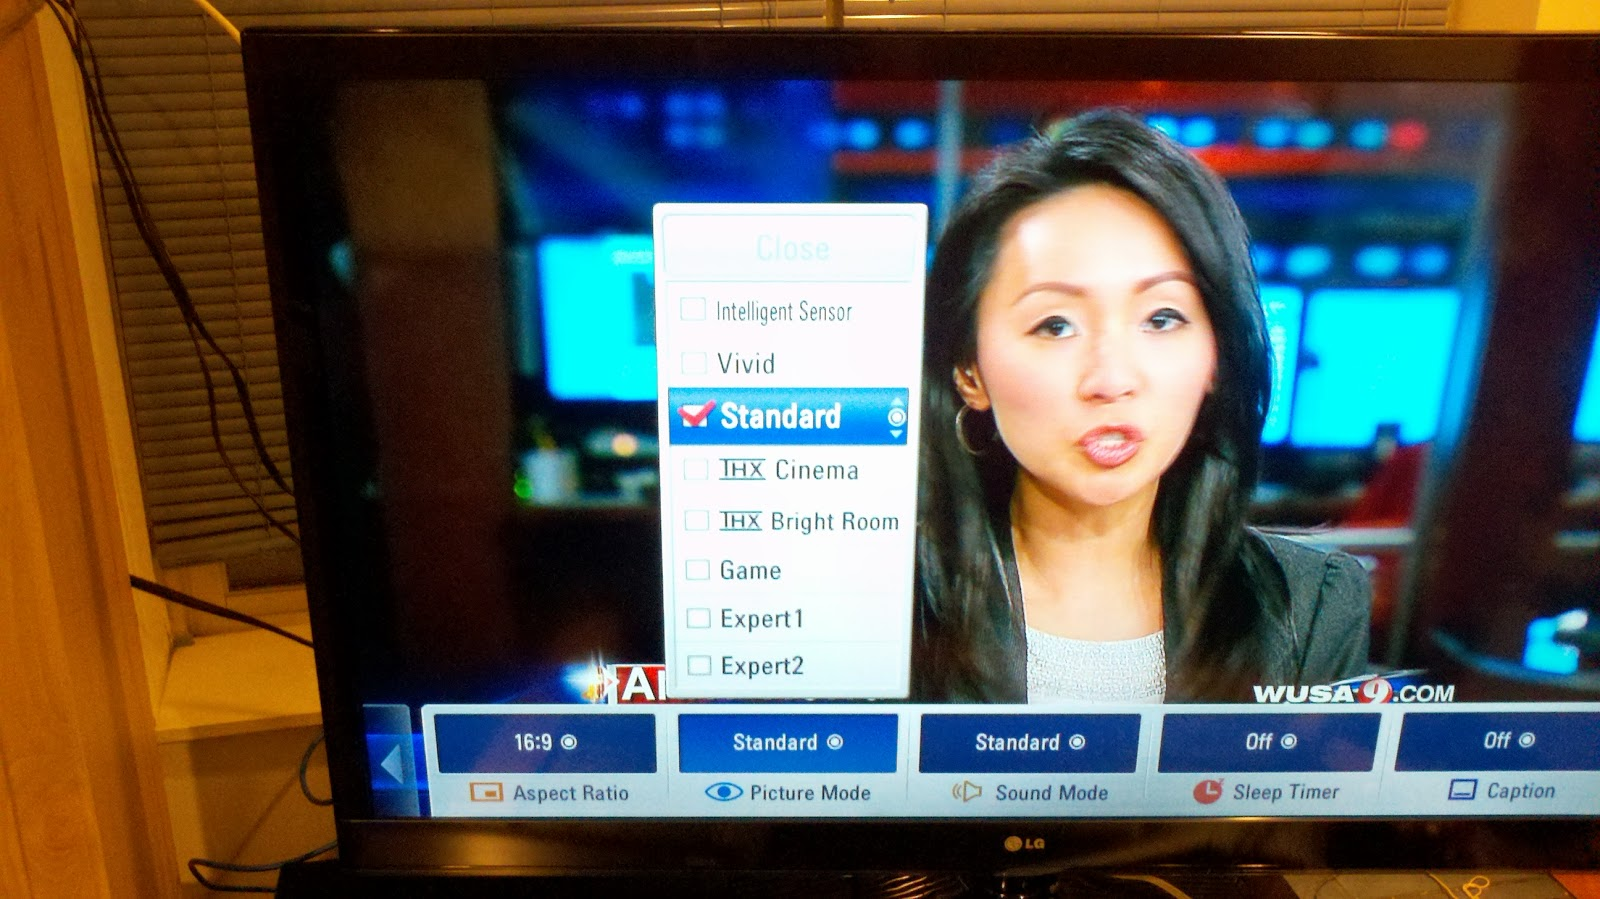 Siliconfish: Hacking the LG 55LW5700 TV